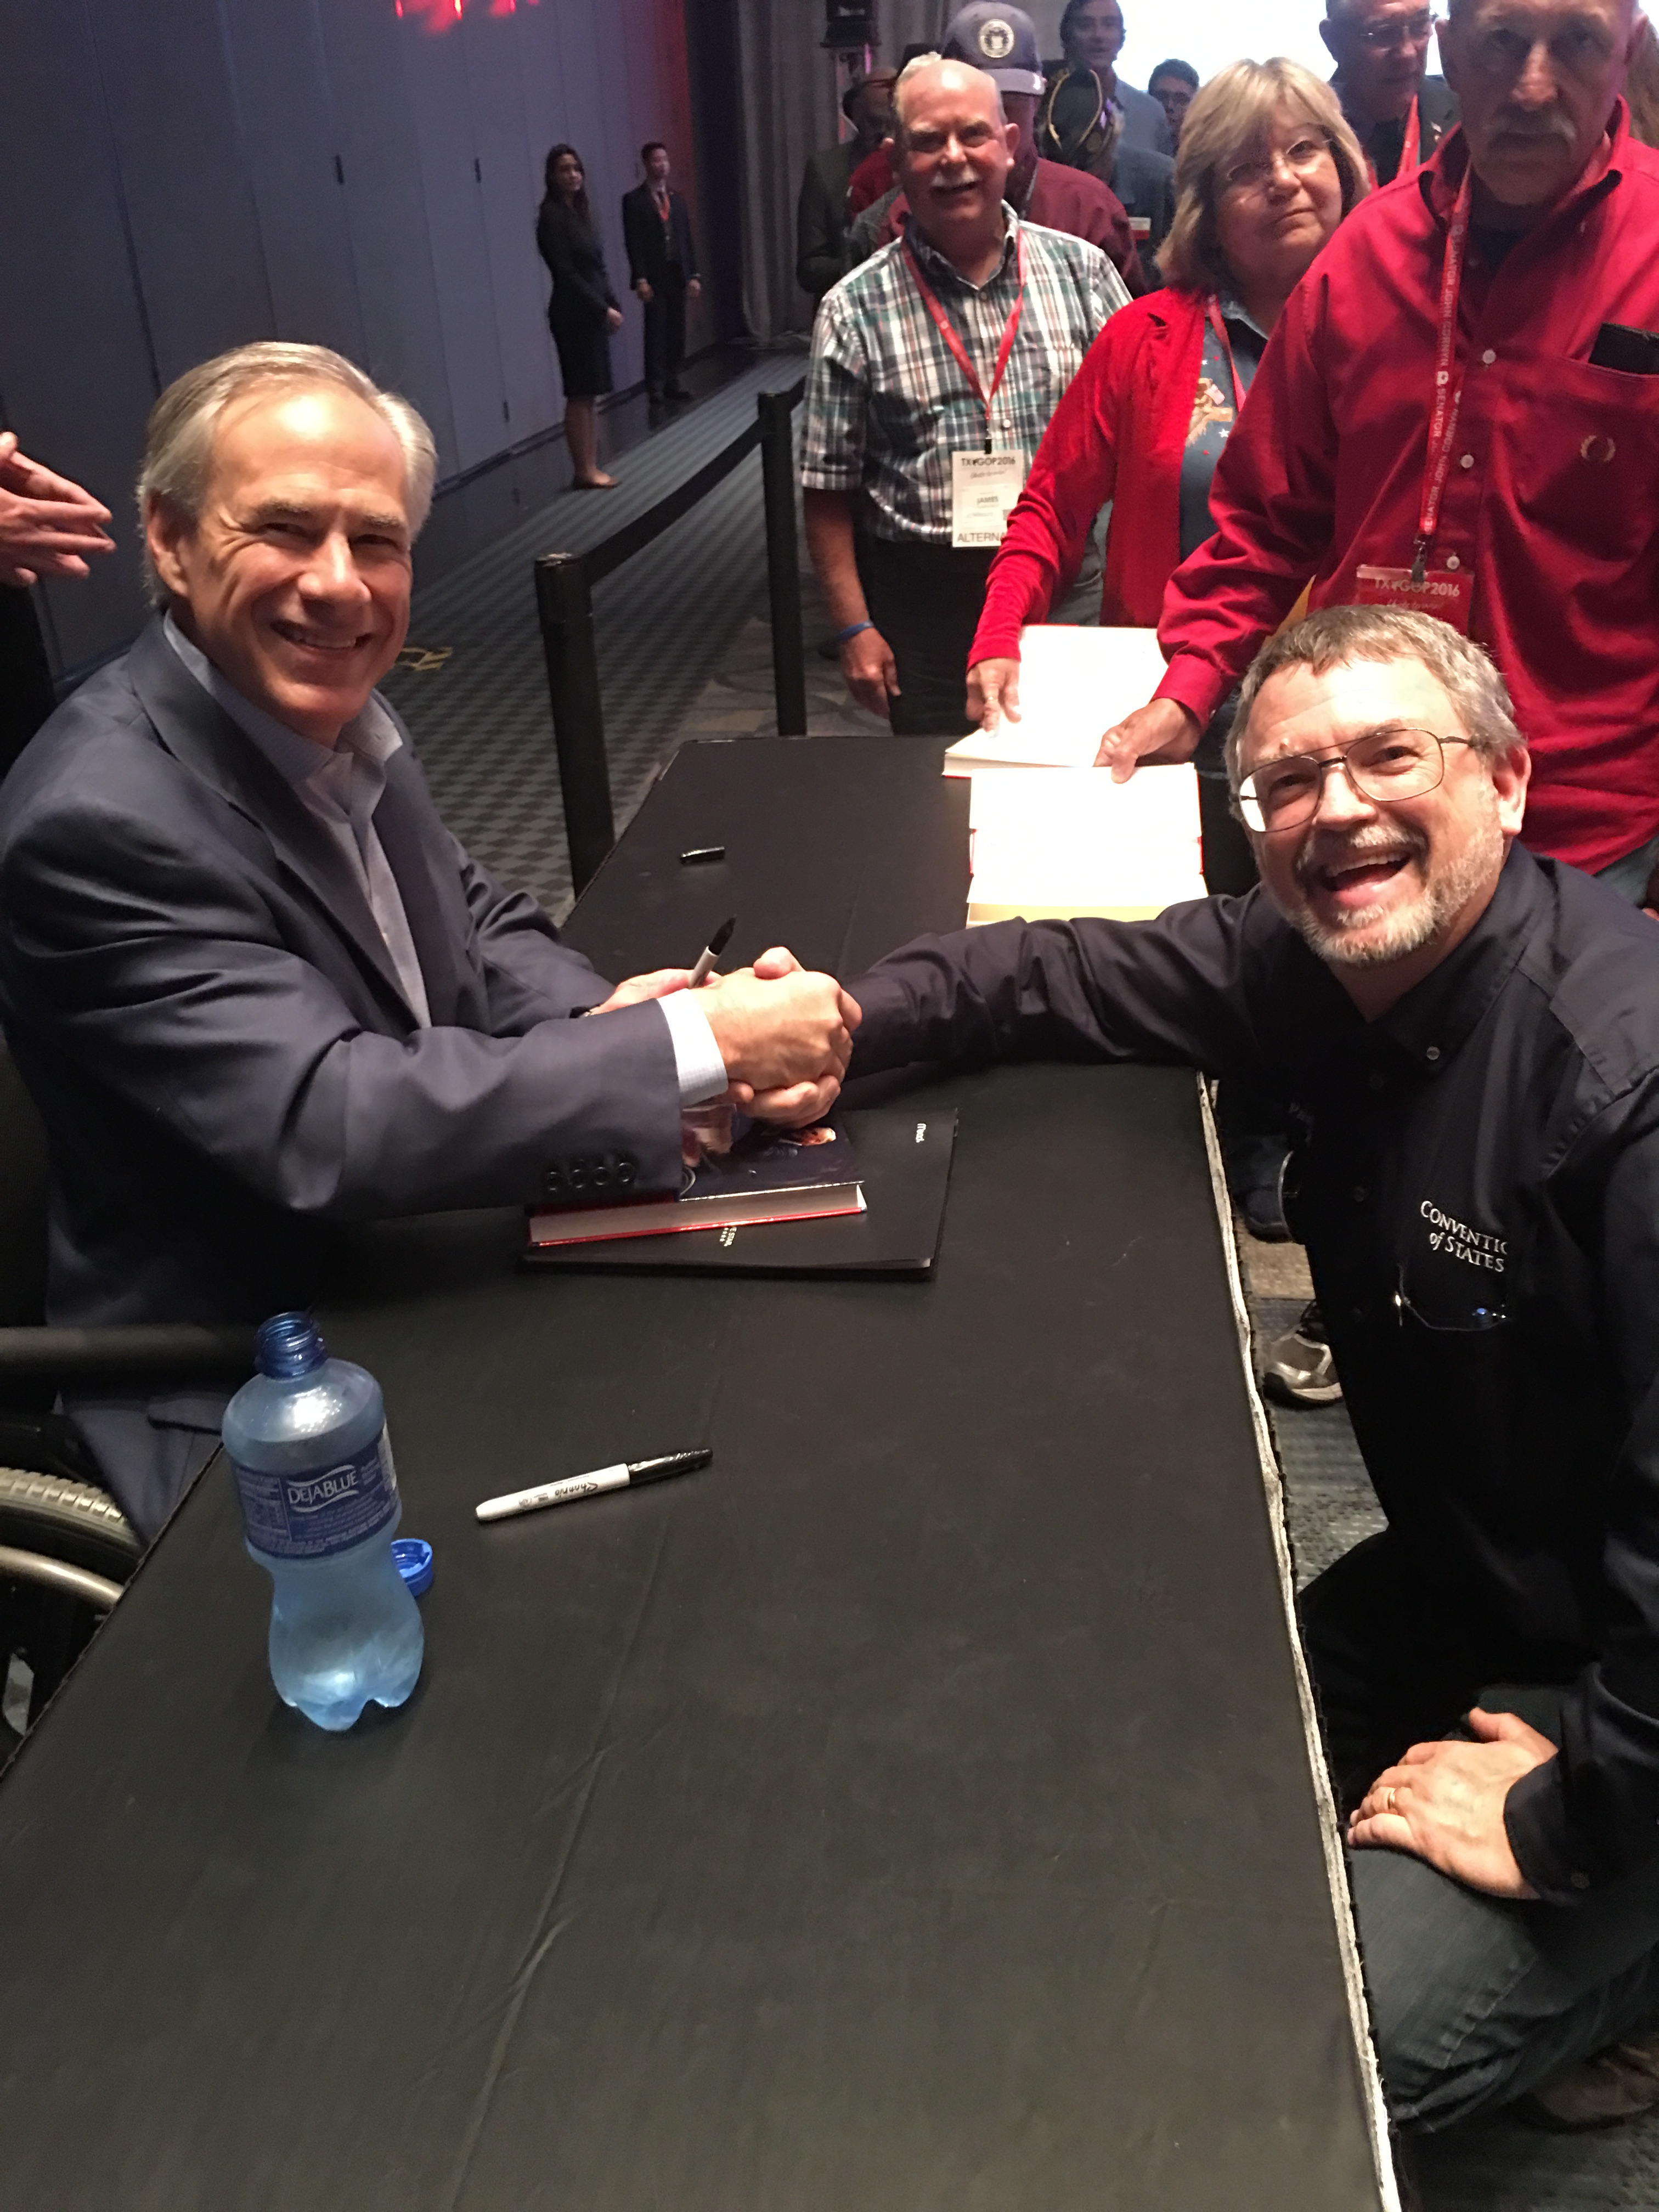 Governor_Abbot_and_Paul_Hodson_Shake_Hands.JPG